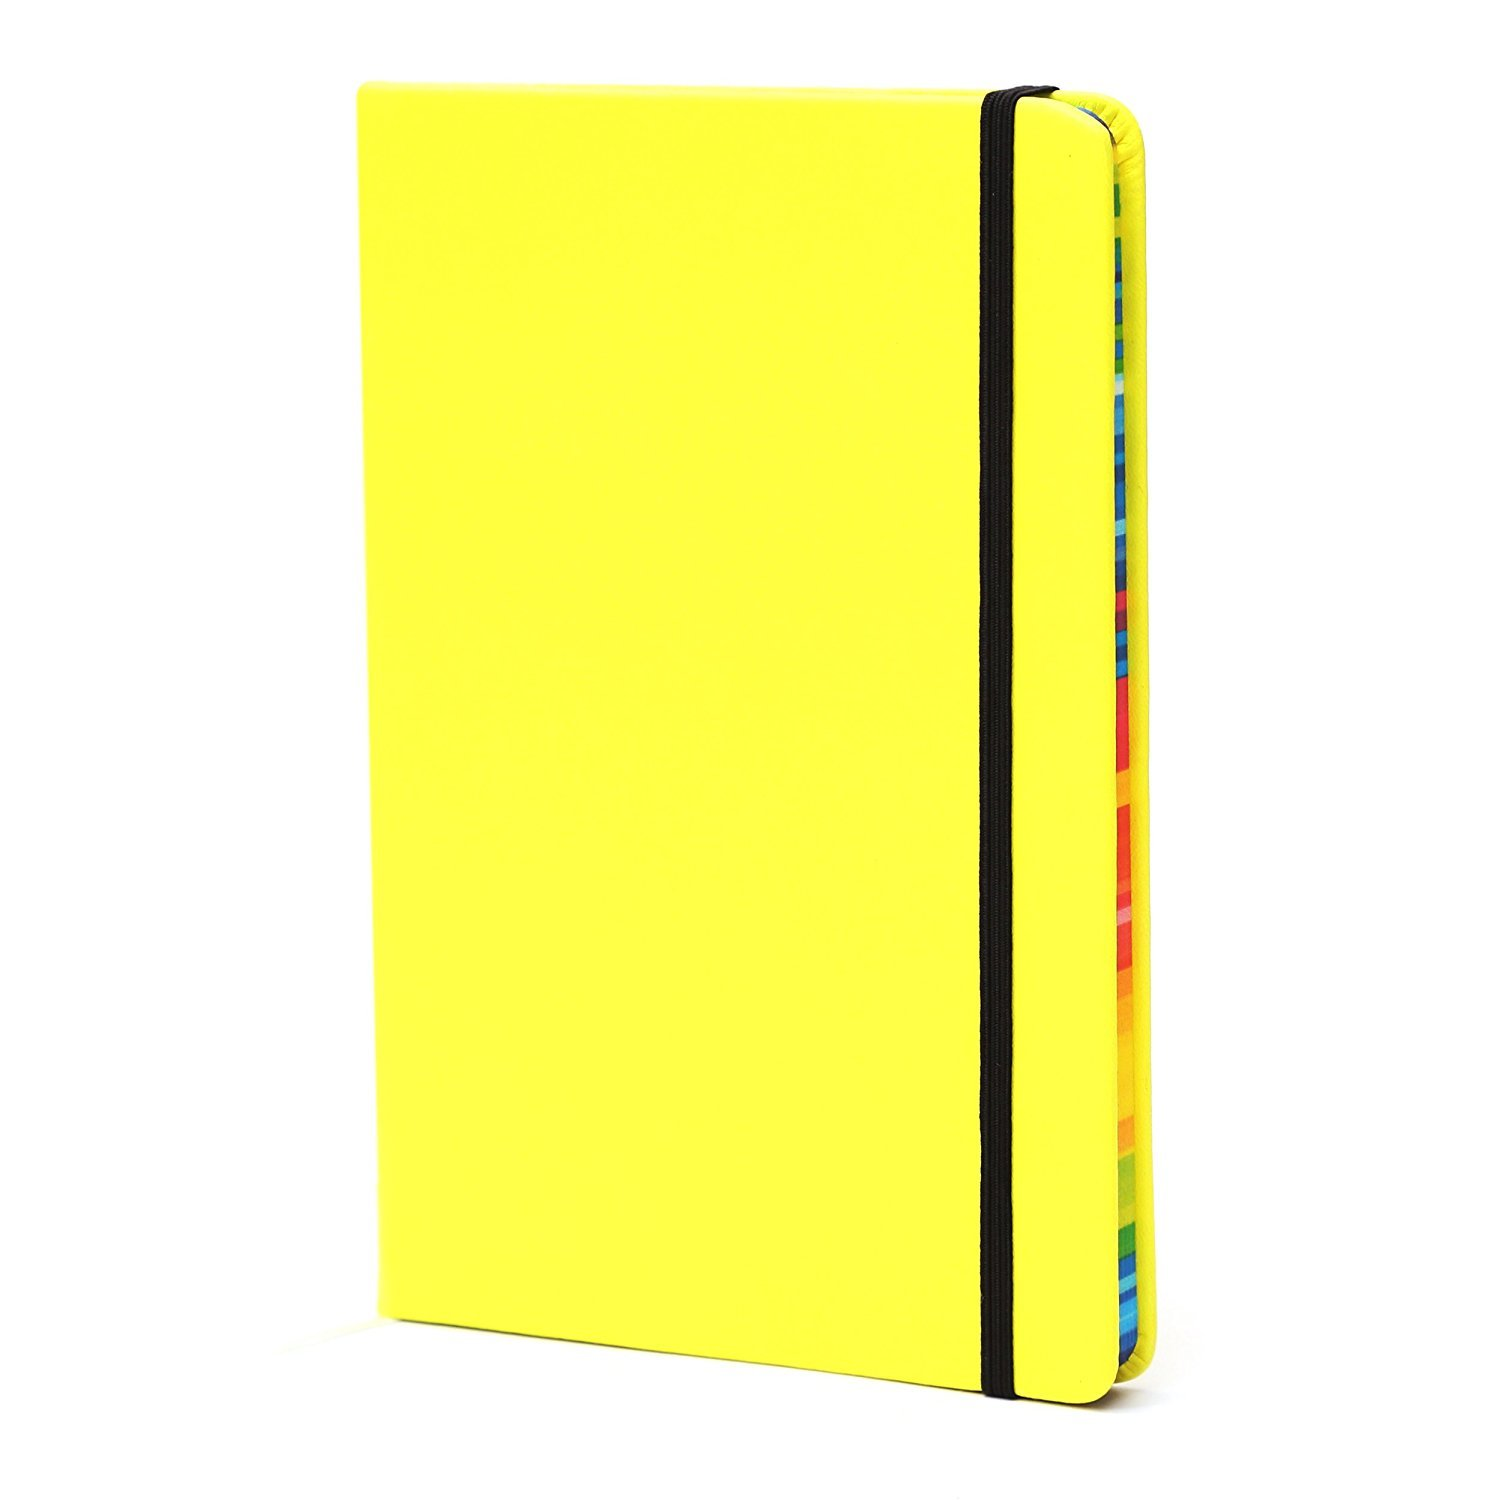 BIOBAY Classic Ruled Travel Notebook | Hardcover Writing Journal and Diary - Premium Lined Paper and Durable Design - 192 Pages - Assorted Fluorescent Colors GRANDEGO